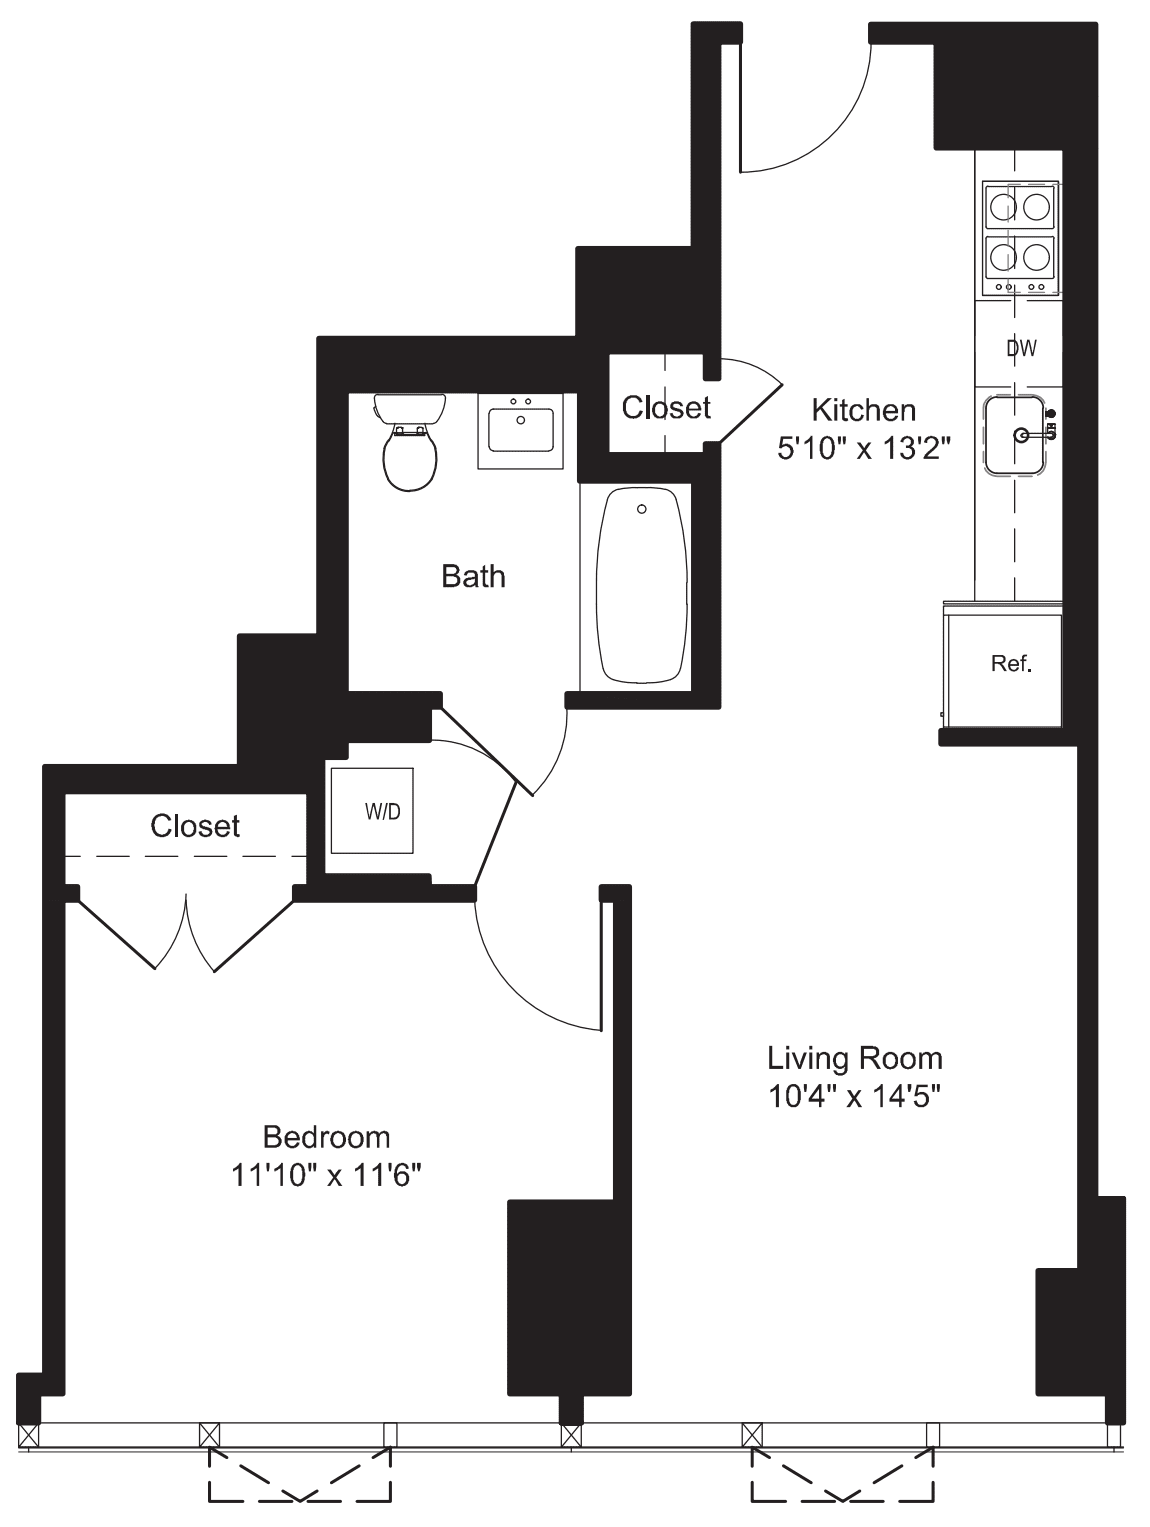 One Bedroom L 2, M 3-6